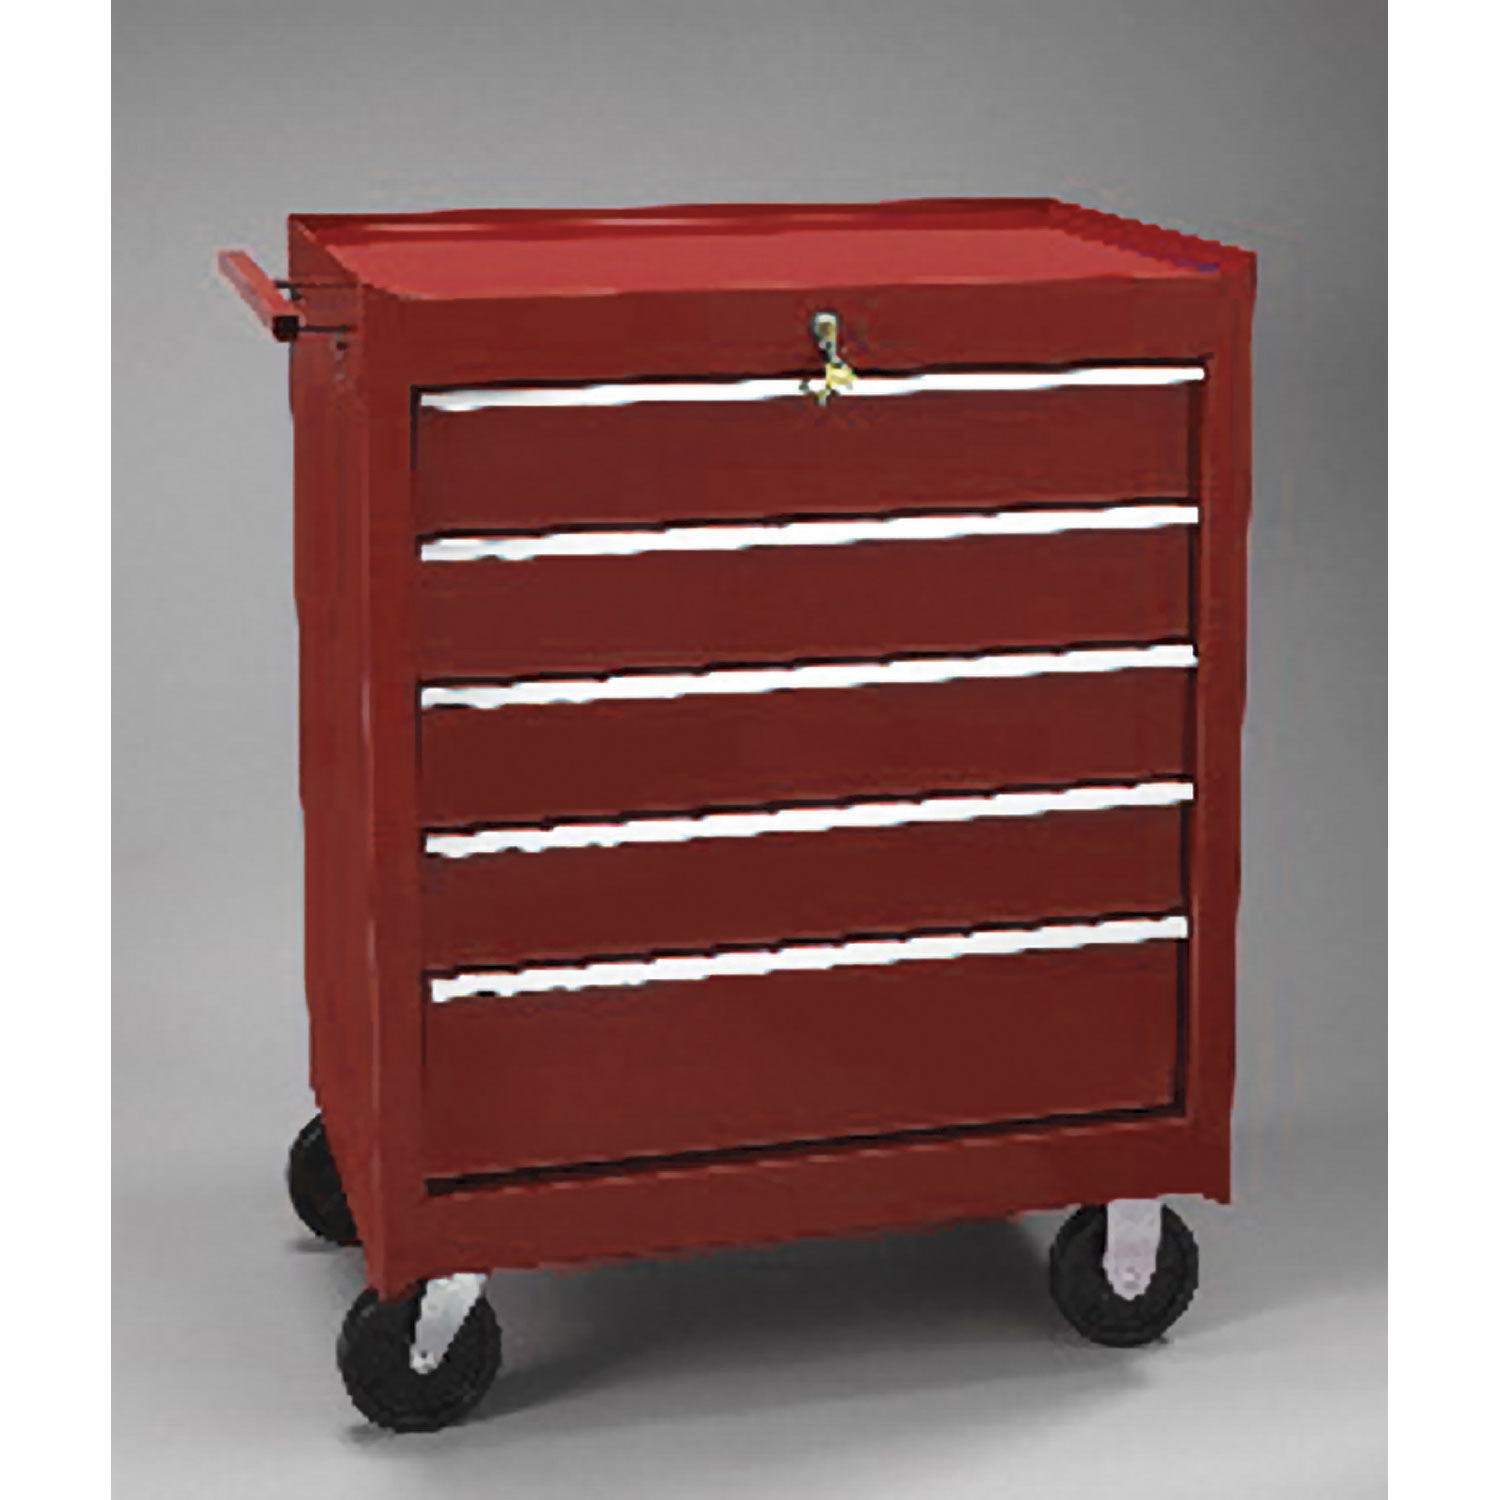 """CART, SUP SAVR, 5 DRW, RED, ONLY TOP DRW KY LOCKS, WT.145LBS., 34 5/8""""h x 18 3/4""""d x 27""""w, EA"""